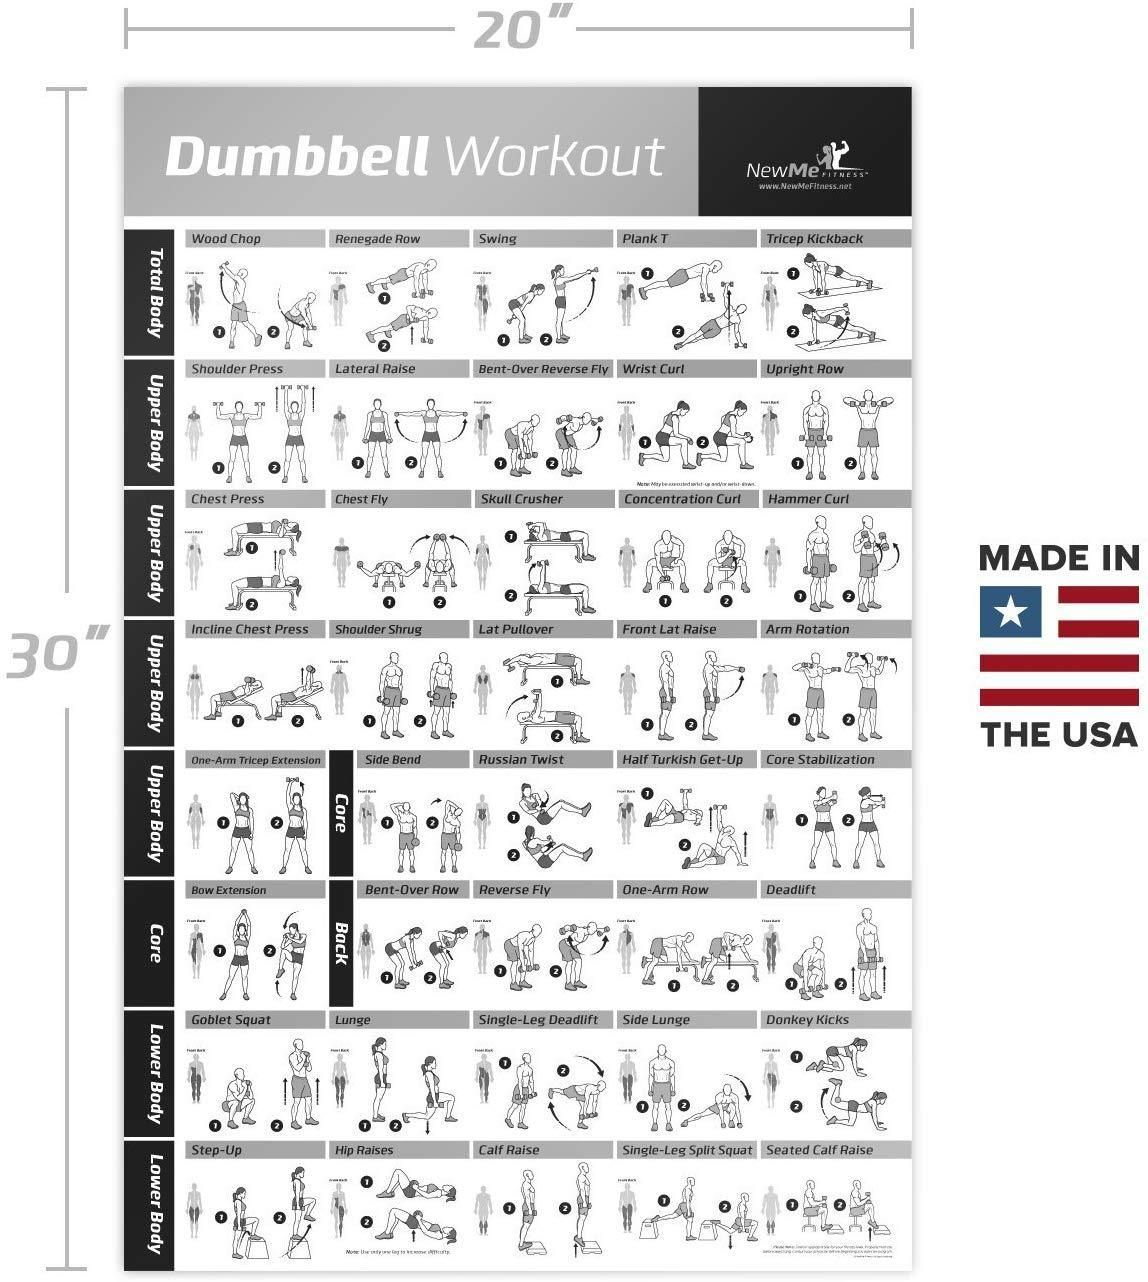 Dumbbell Exercise Poster Vol 1 - Laminated #dumbbellexercises Dumbbell Exercise Poster Vol 1 - Laminated – NewMeFitness